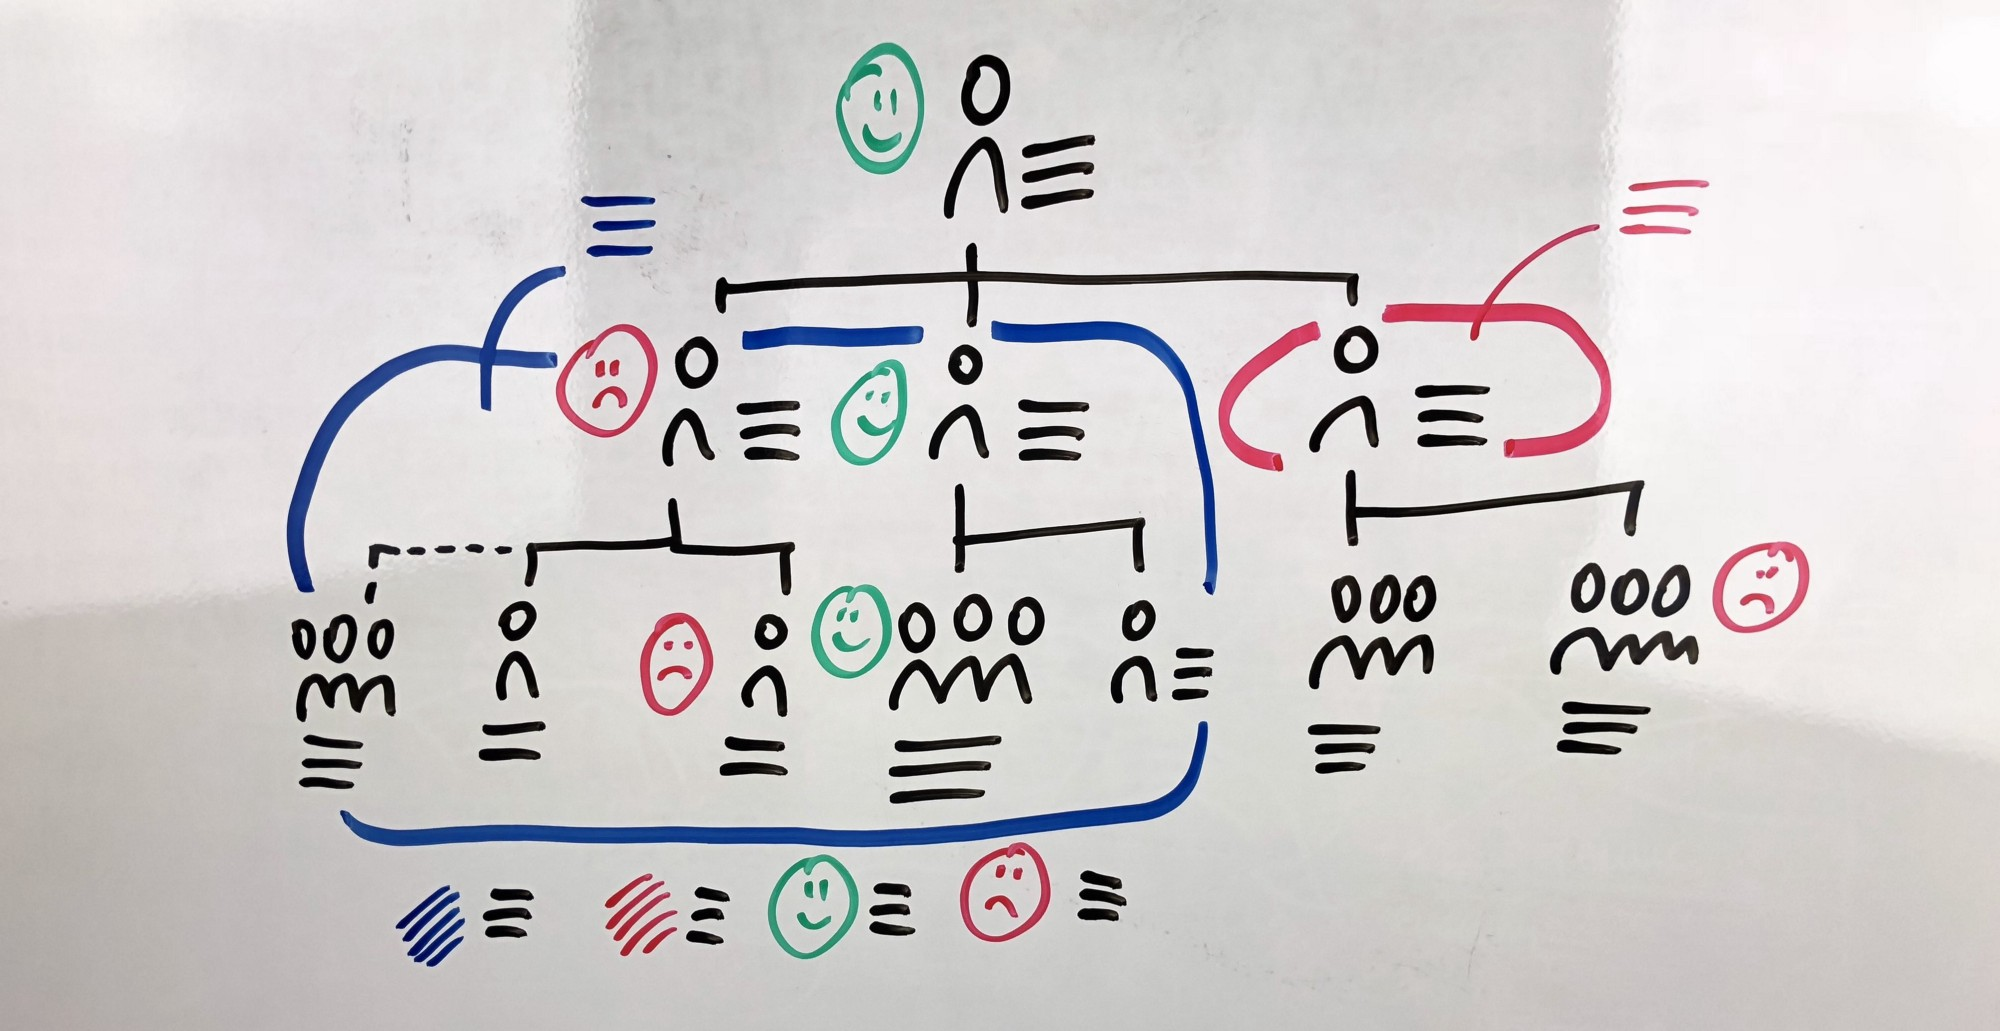 Extremely Useful Whiteboard Templates For Efficient Workshops — Part 2